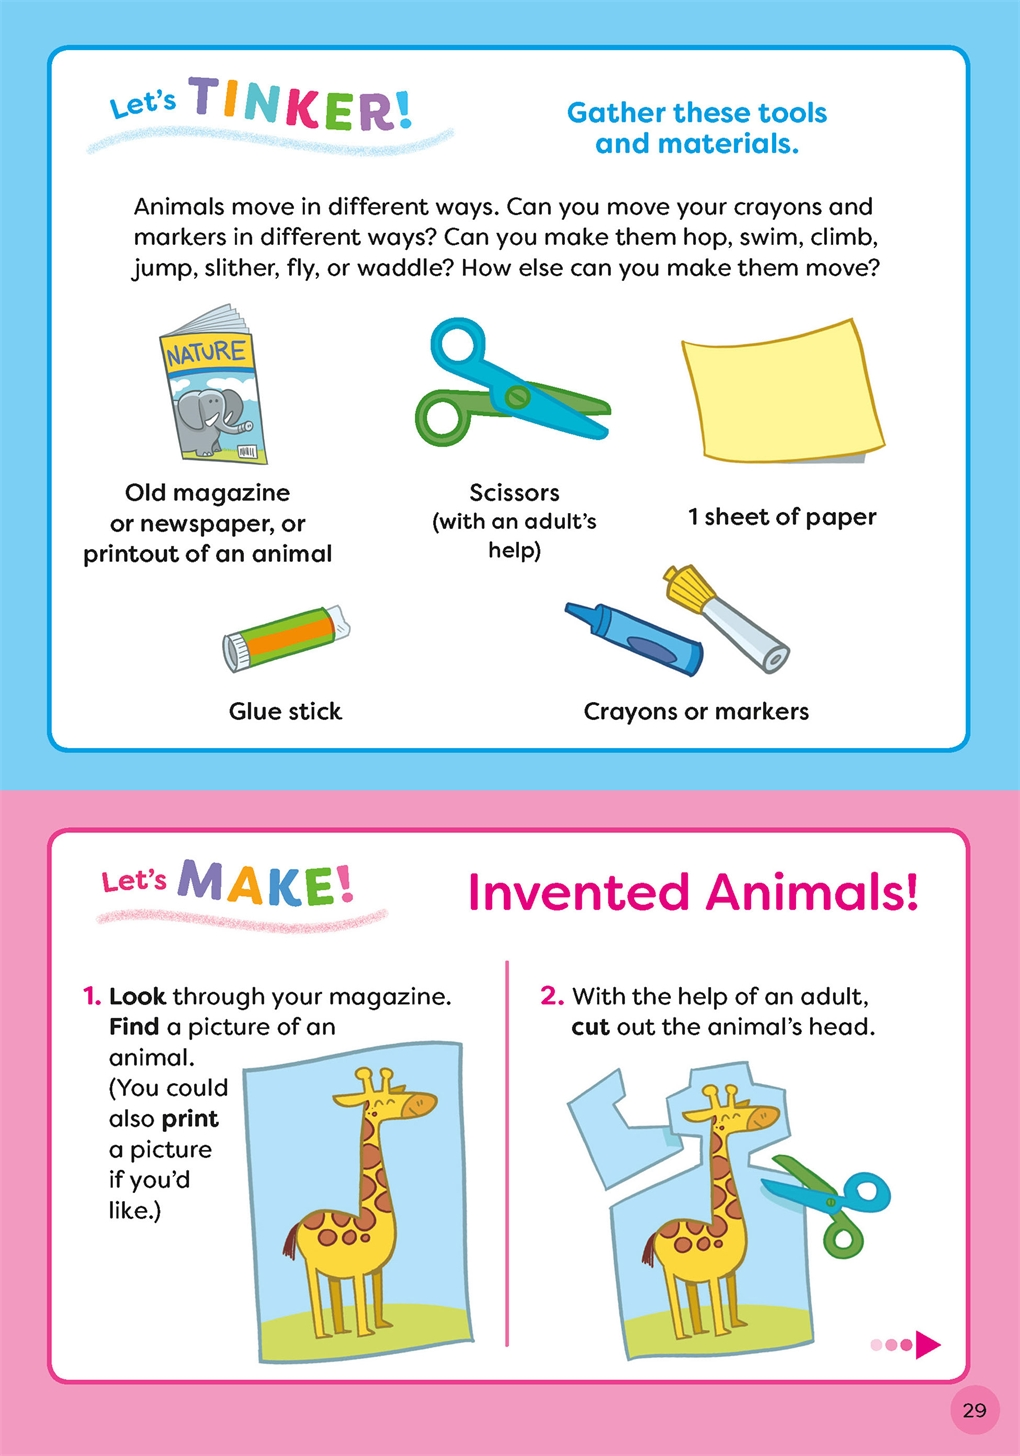 Interior book image for TinkerActive Early Skills Science Workbook Ages 3+